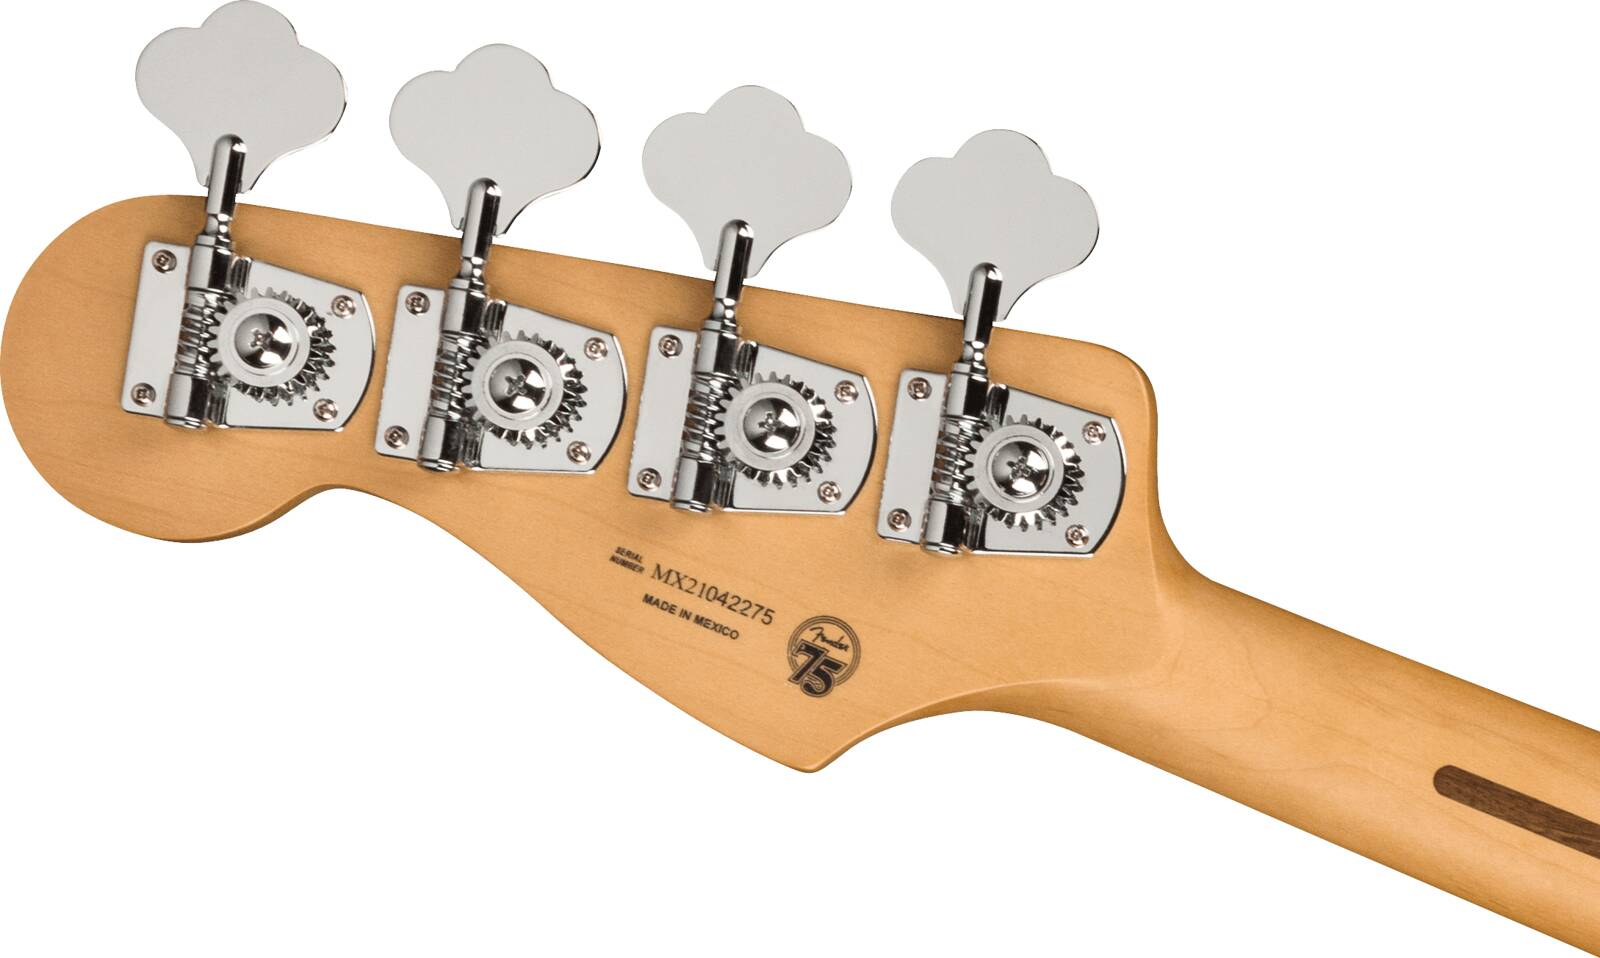 Fender Player Plus Jazz Bass, Maple Fingerboard, Olympic Pearl : photo 5